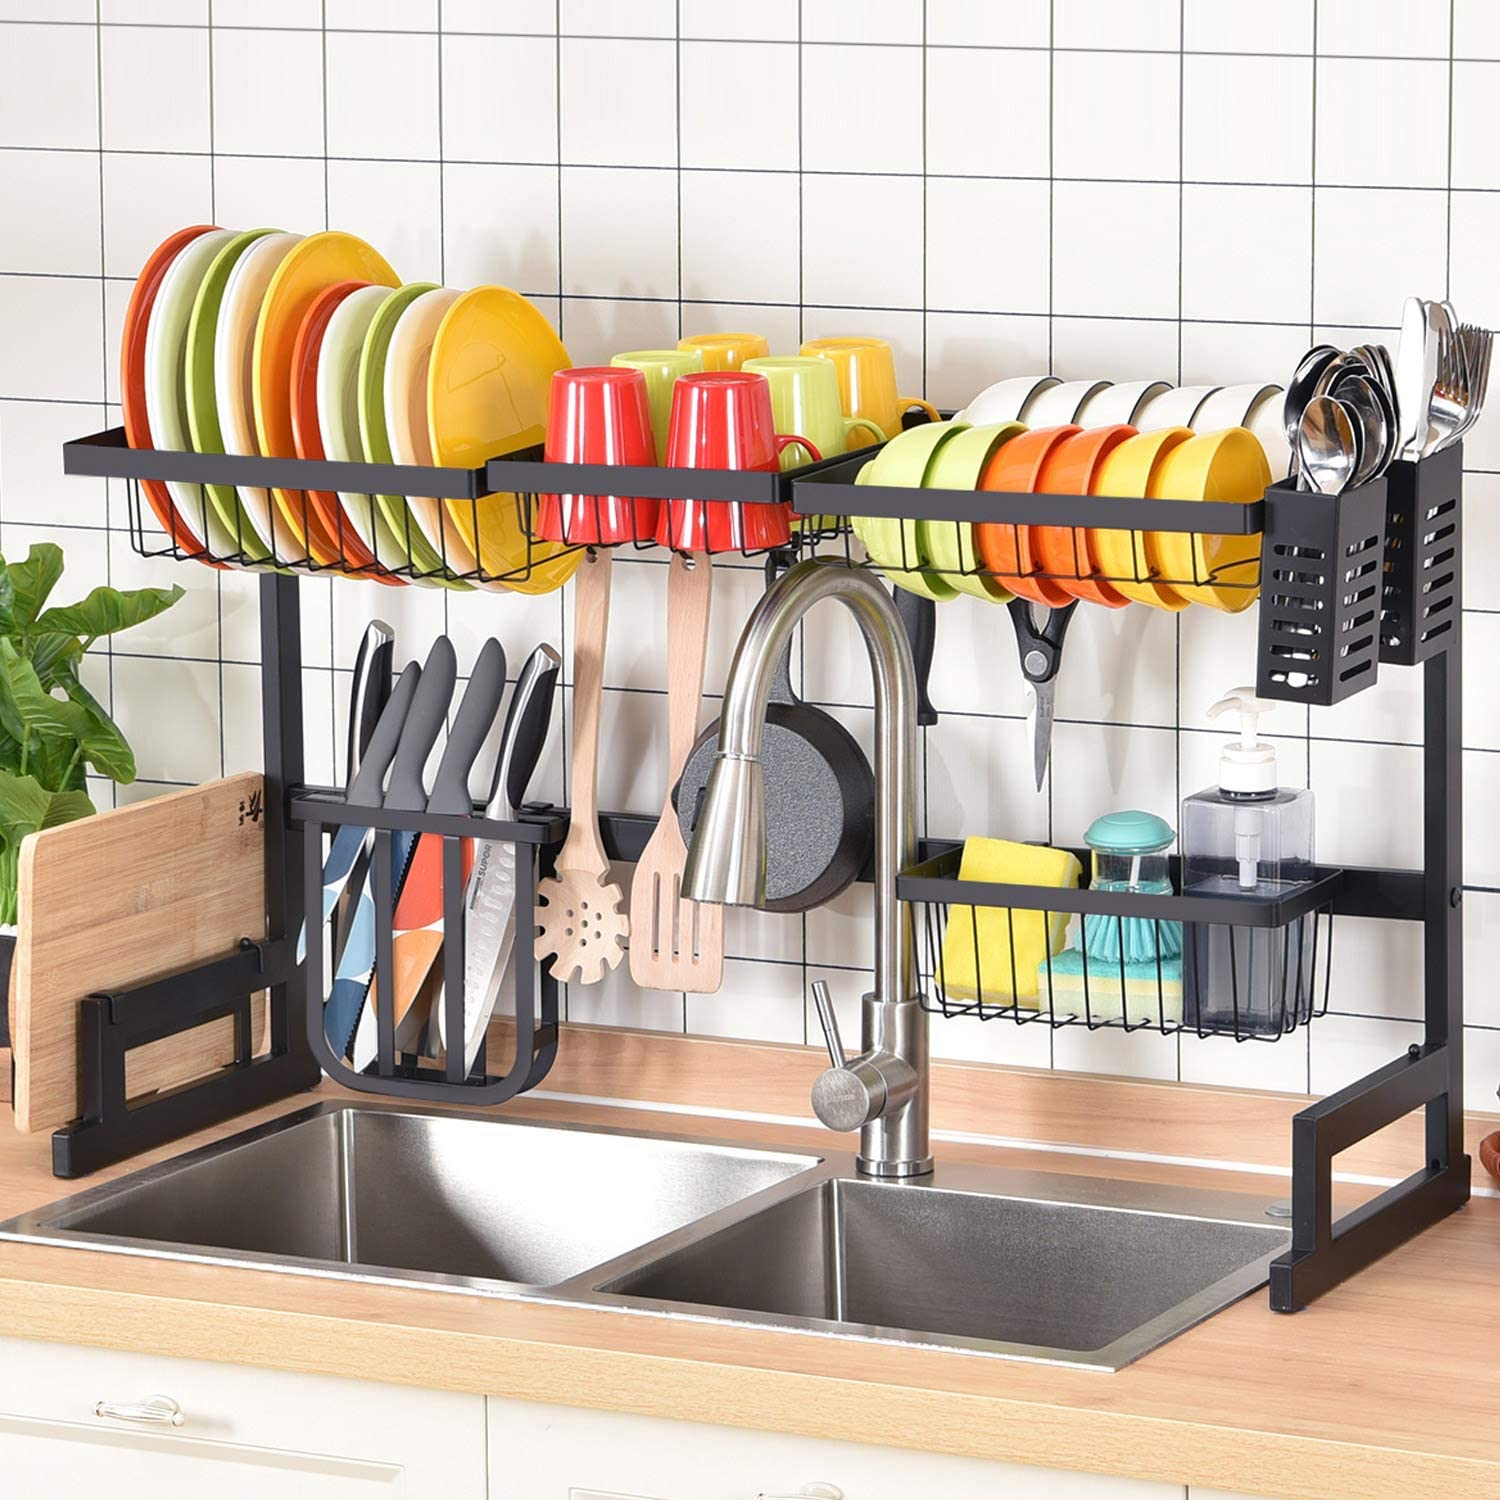 Amazon Com Large Capacity 2 Tier Over Sink Dish Rack Sink Organize Stand Shelf Dish Drying Rack With Utensil Holder Hooks Kitchen Counter Supplies Storage For Plates Bowls Pots Black Kitchen Dining